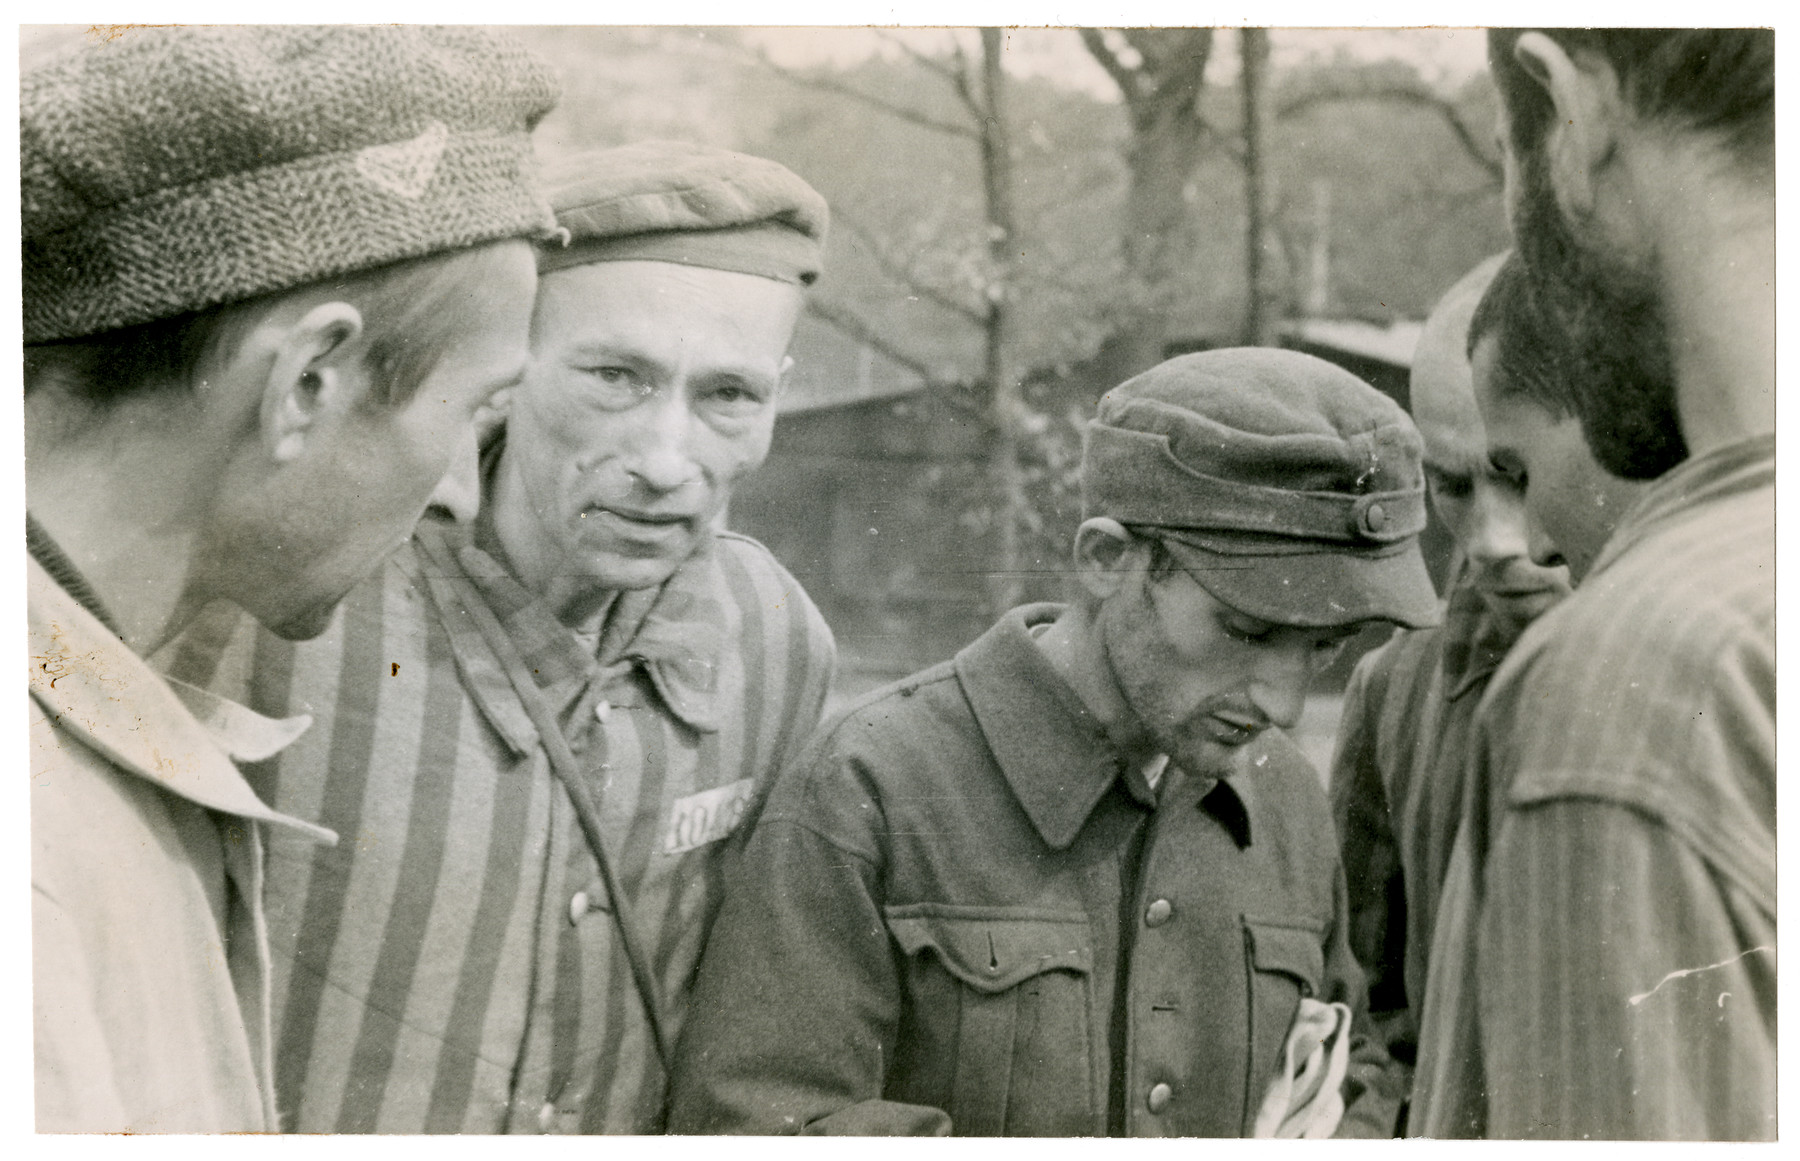 Survivors from the Langenstein-Zwieberge concentration camp.